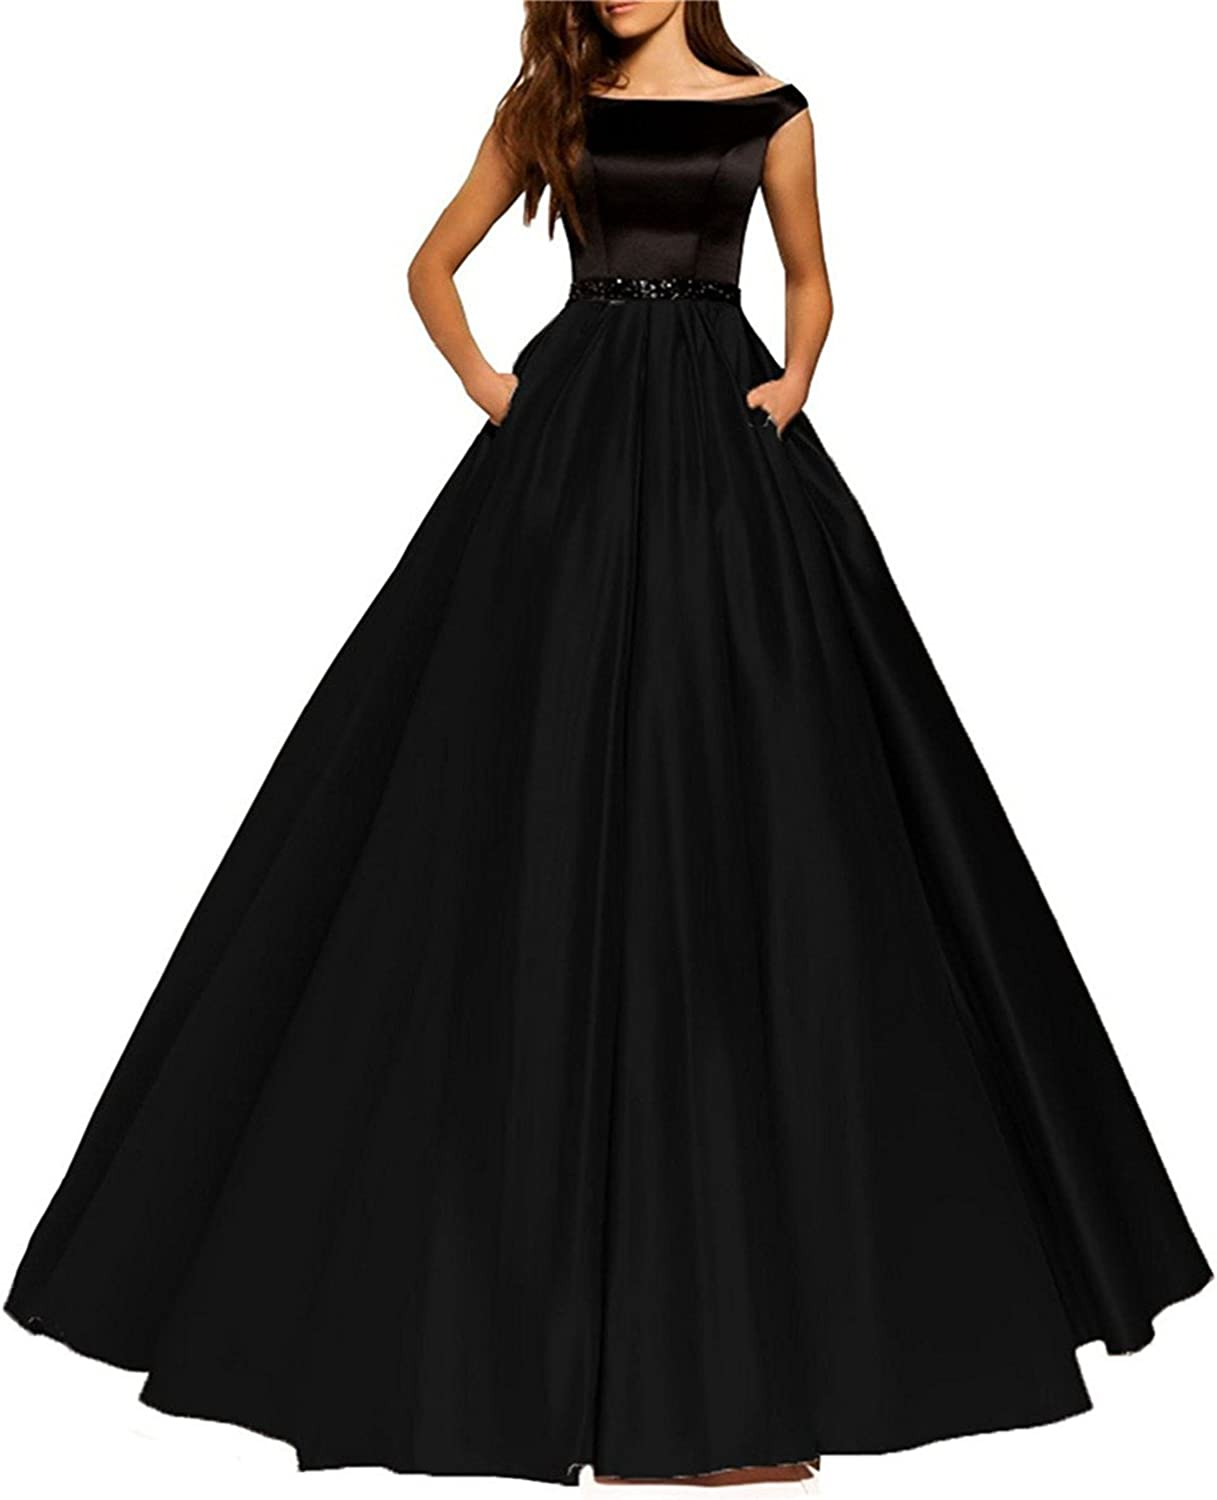 Homdor Off The Shoulder Prom Dresses with Pockets ALine Long Evening Gowns 2018